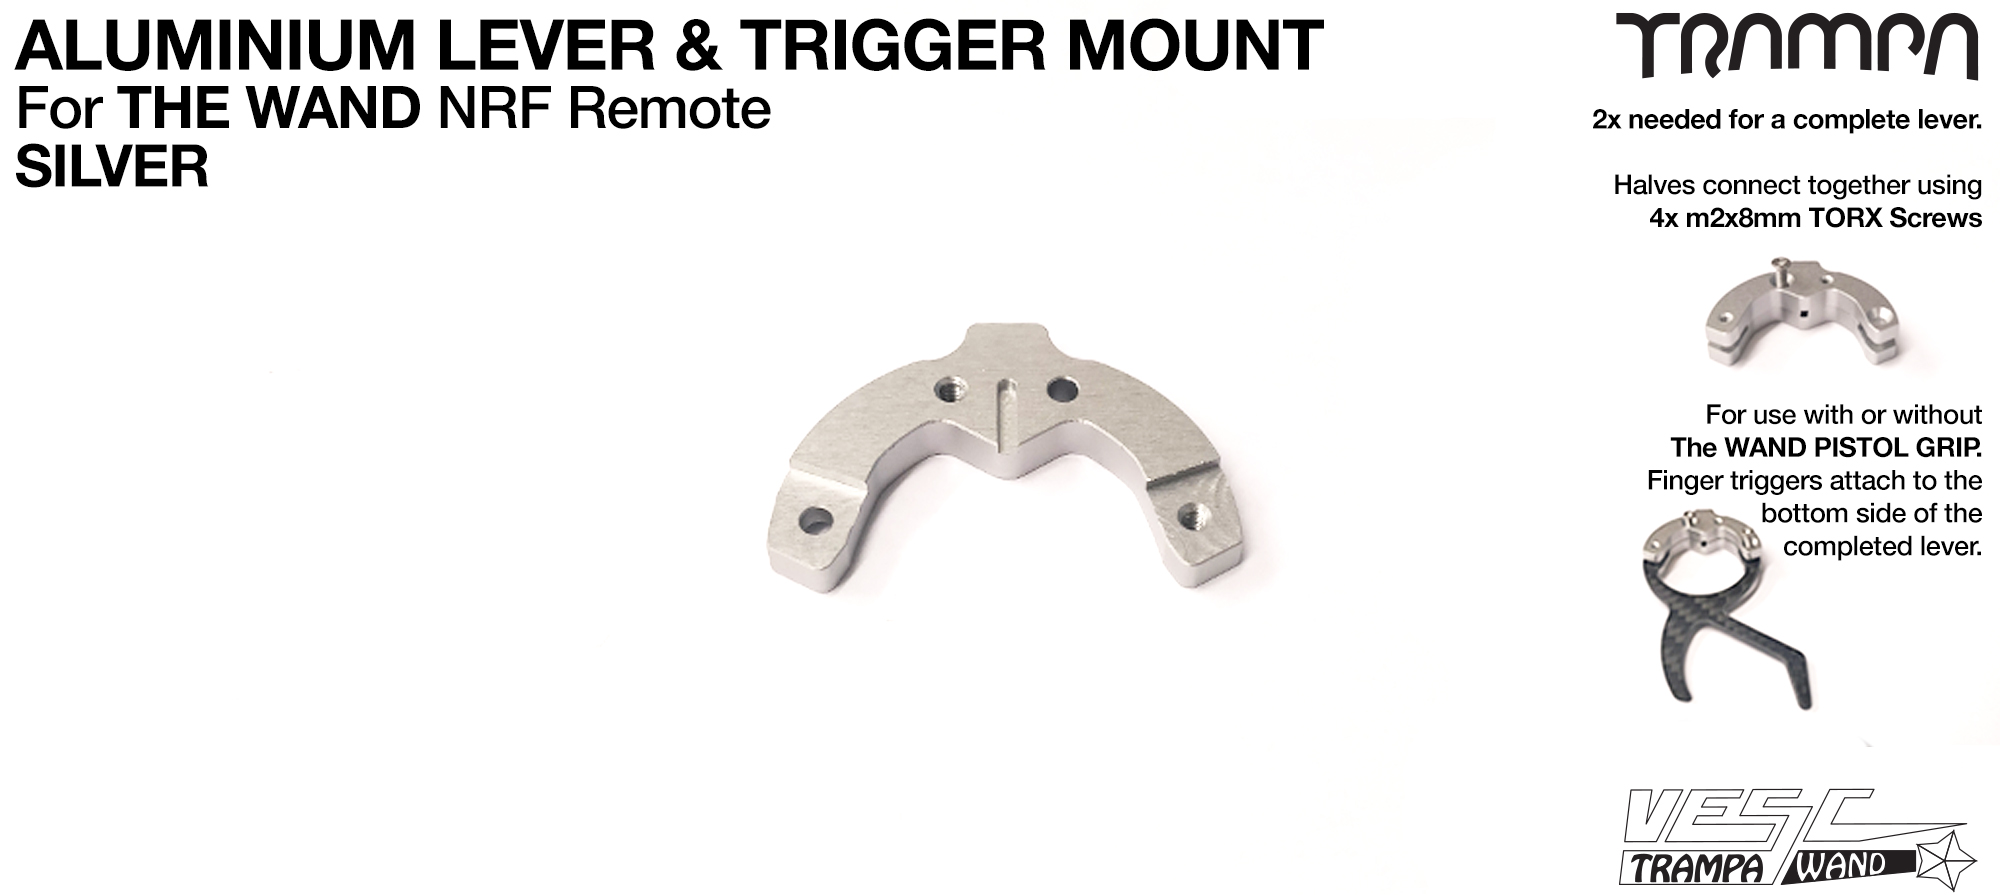 WAND - Aluminium Lever - For Mounting Finger Triggers - SILVER